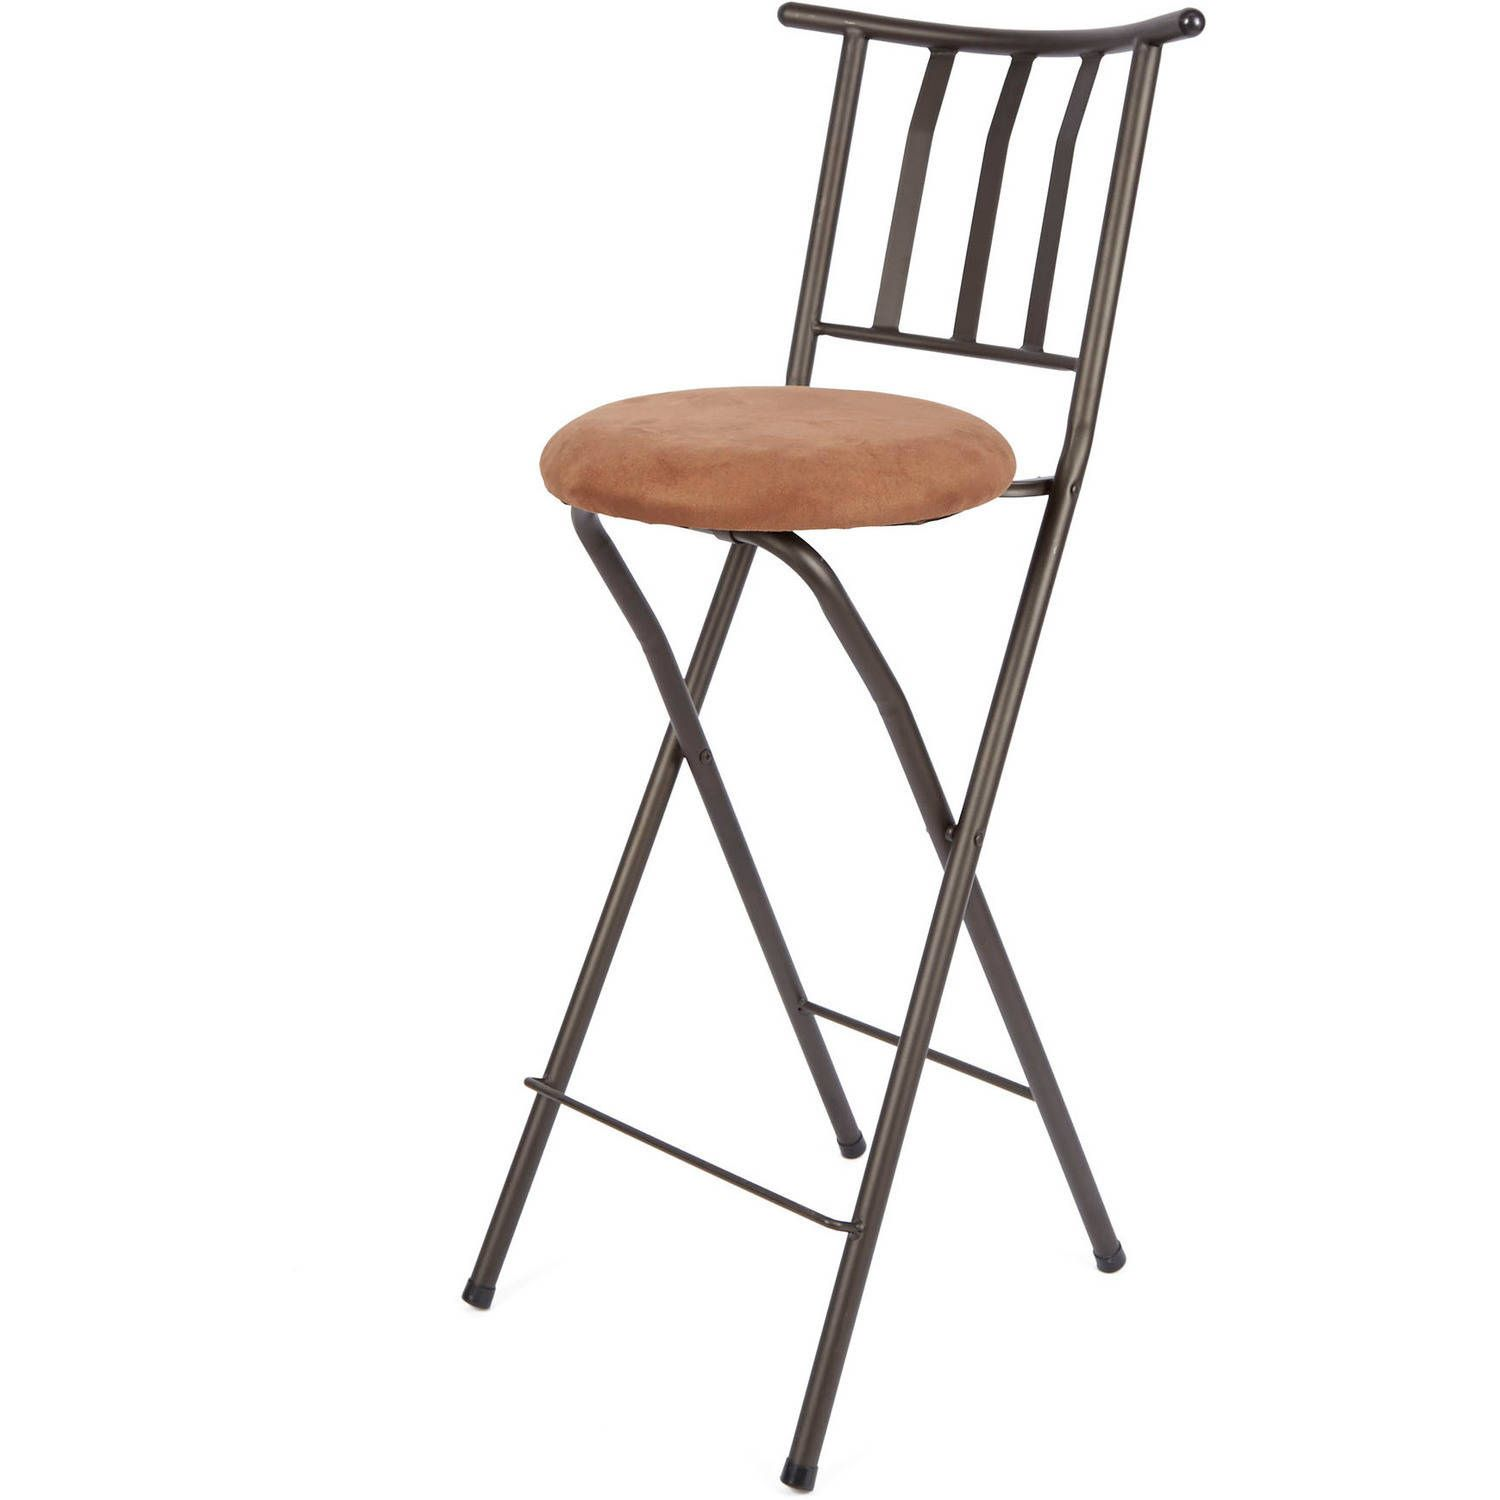 Inspirational Foldable Bar Stool with Backrest